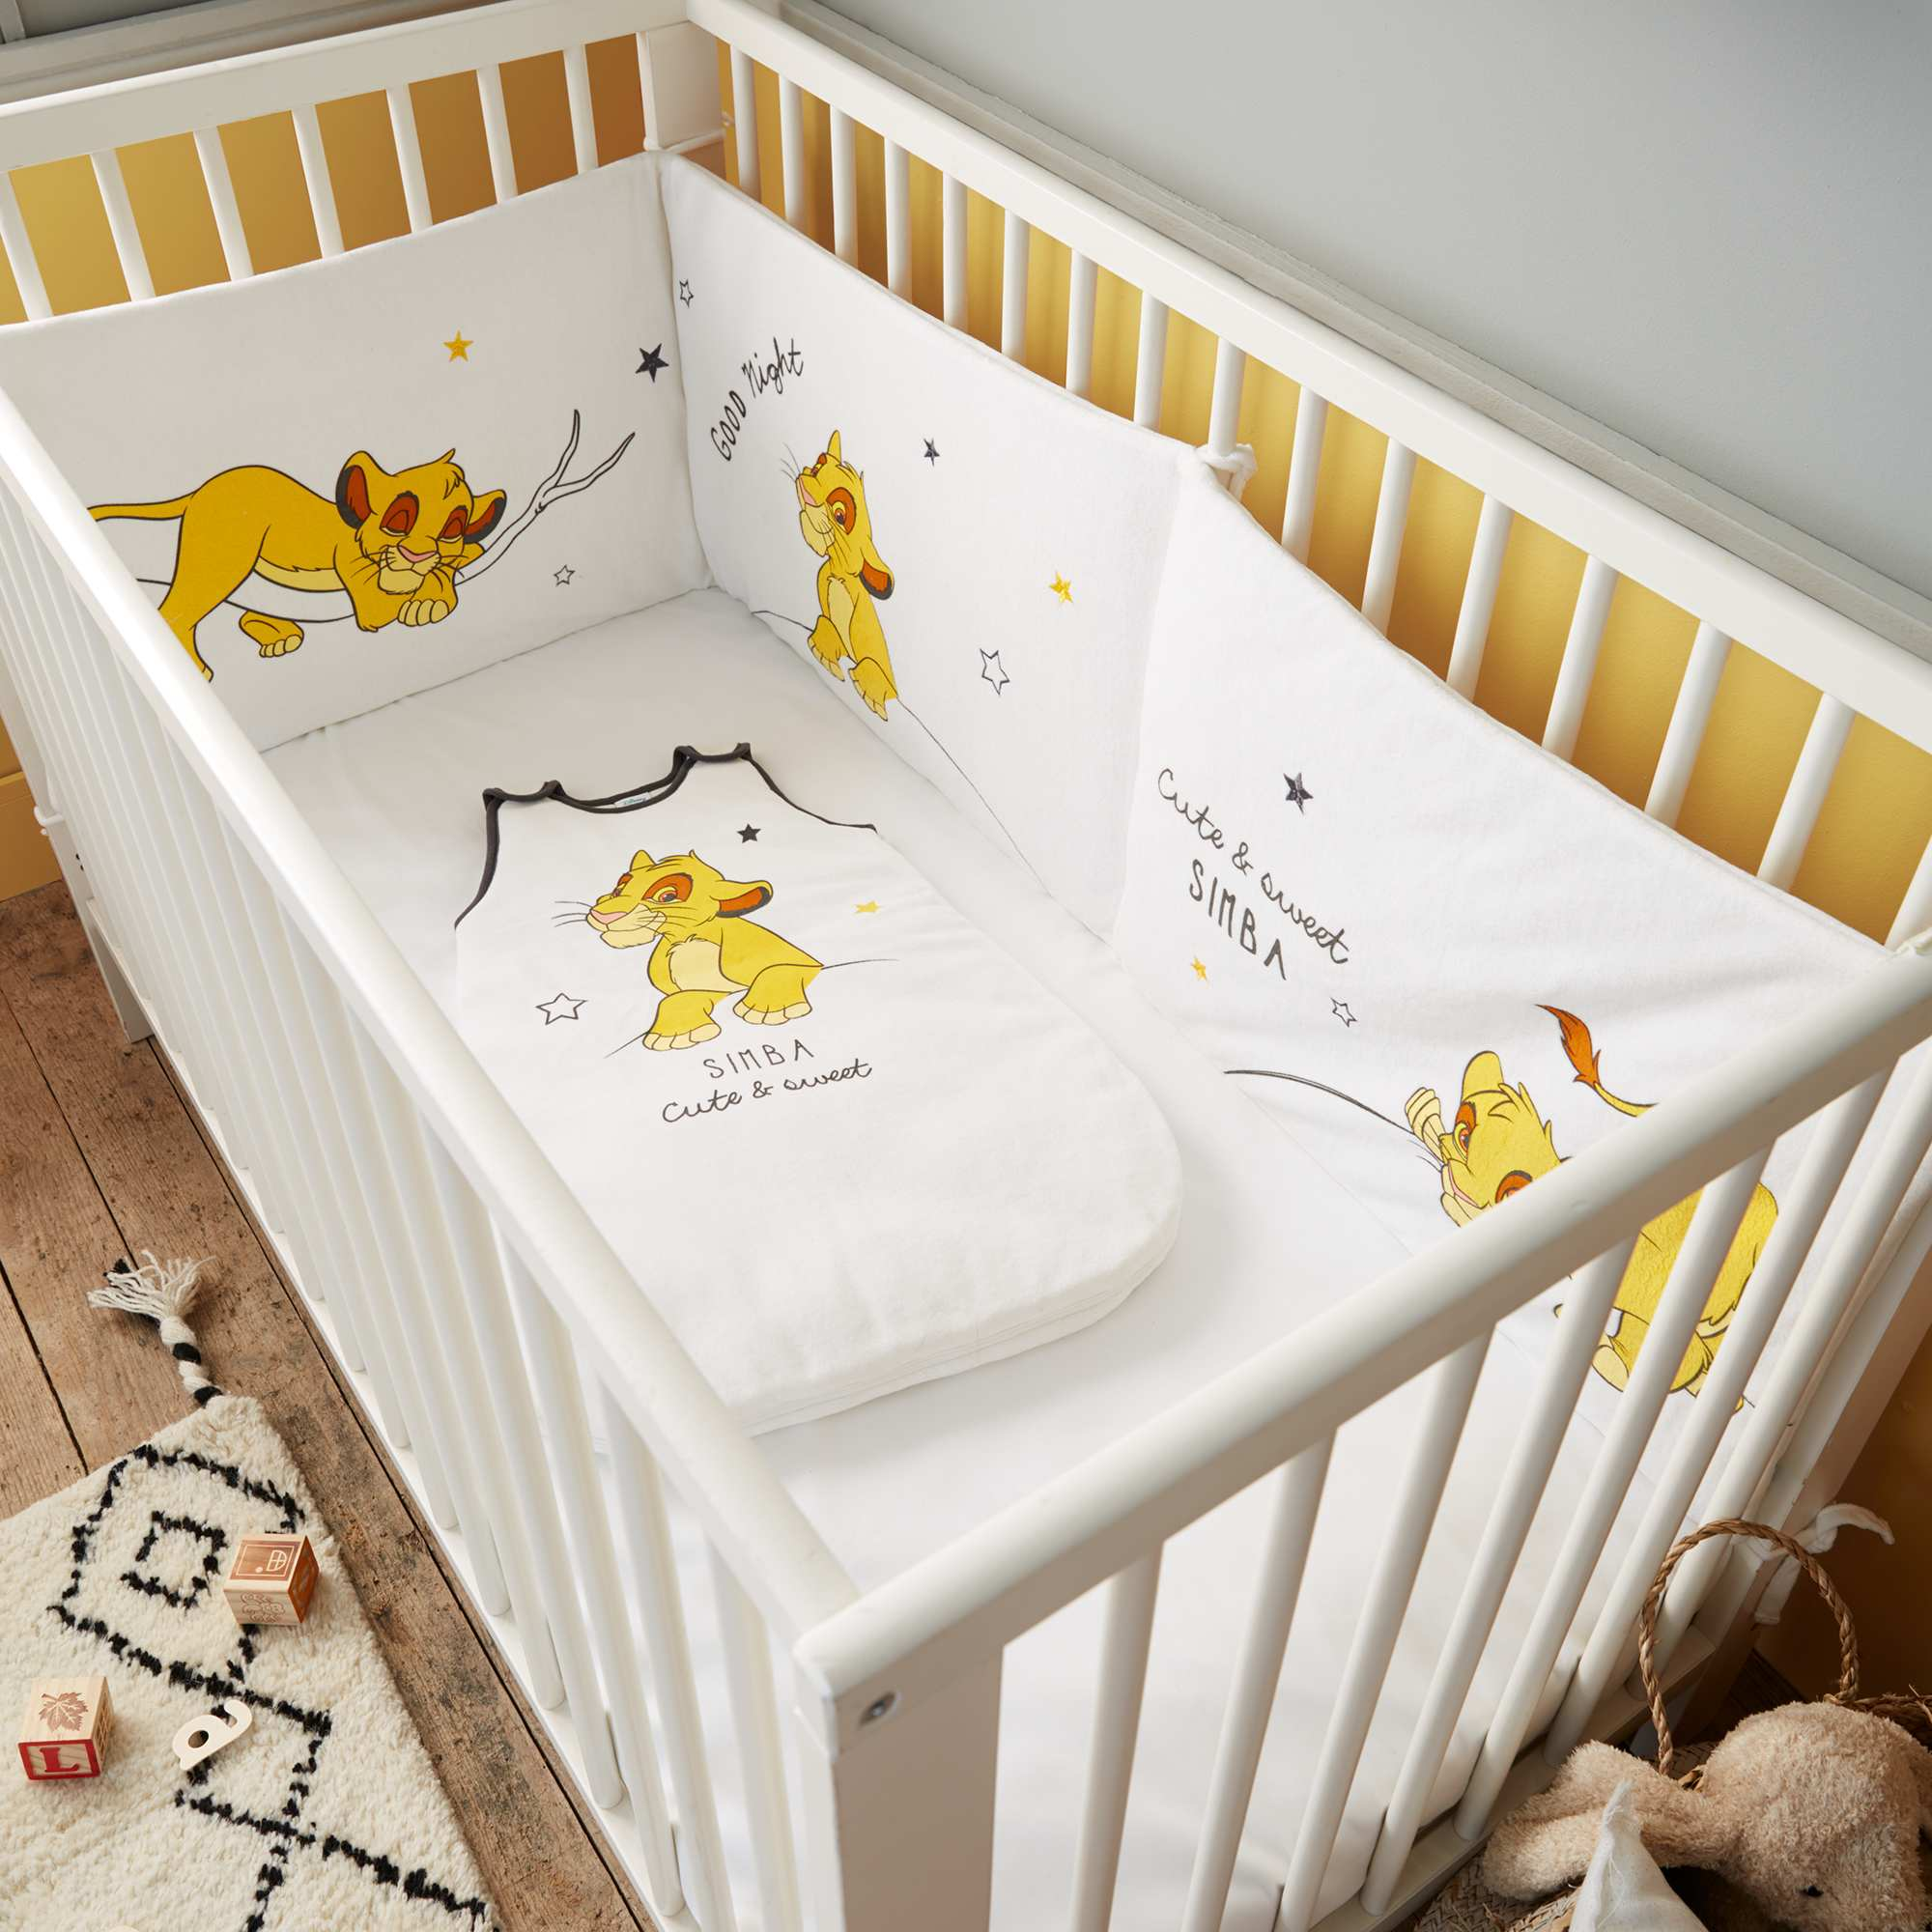 Tour de lit 39 roi lion 39 de 39 disney 39 b b gar on blanc - Lit bebe garcon original ...